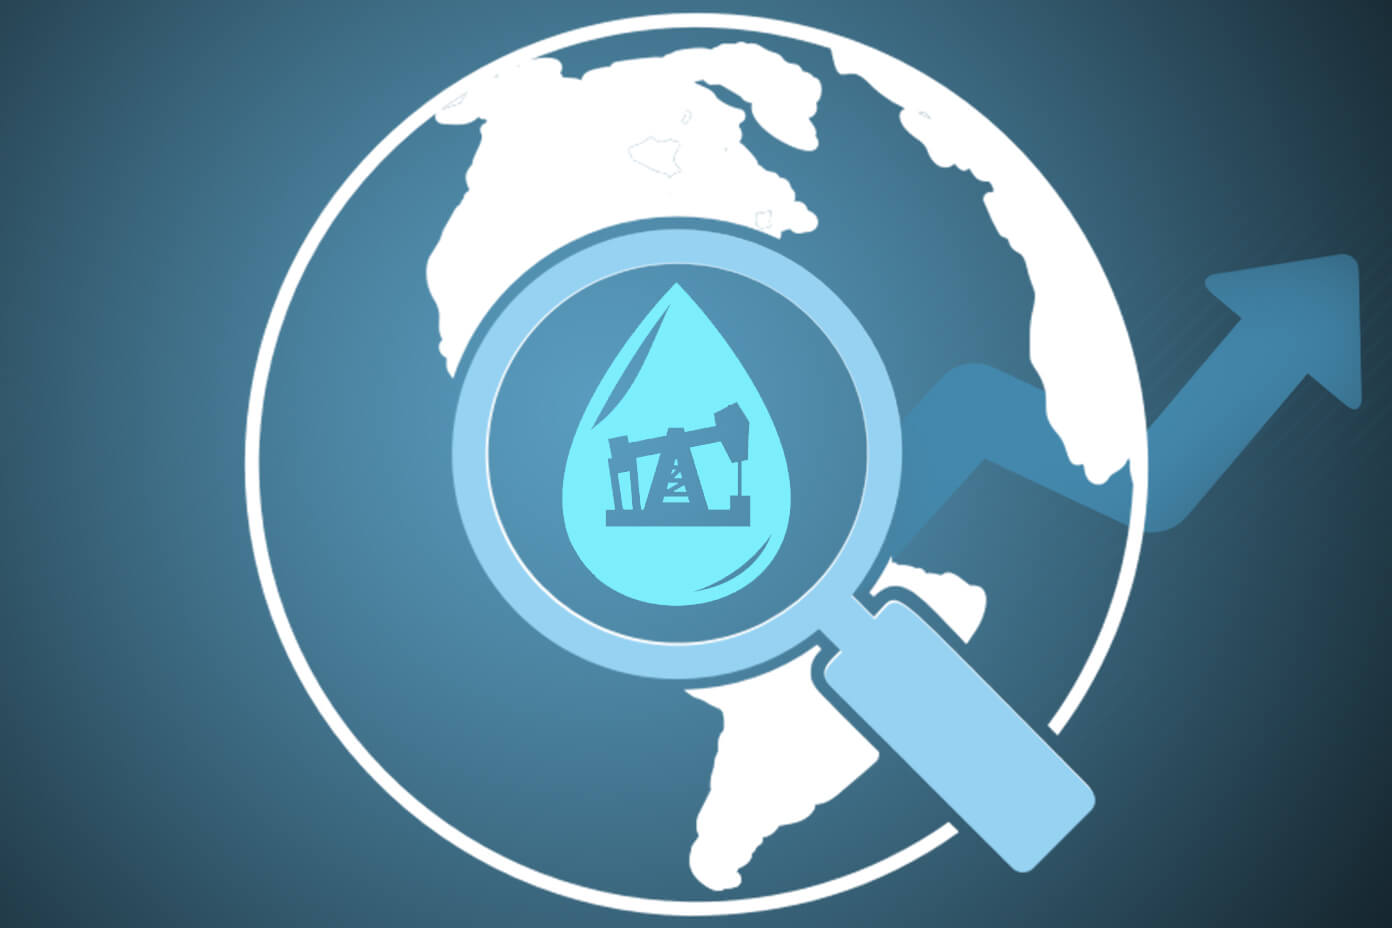 Global Oil & Gas Discoveries to Witness Major Increase